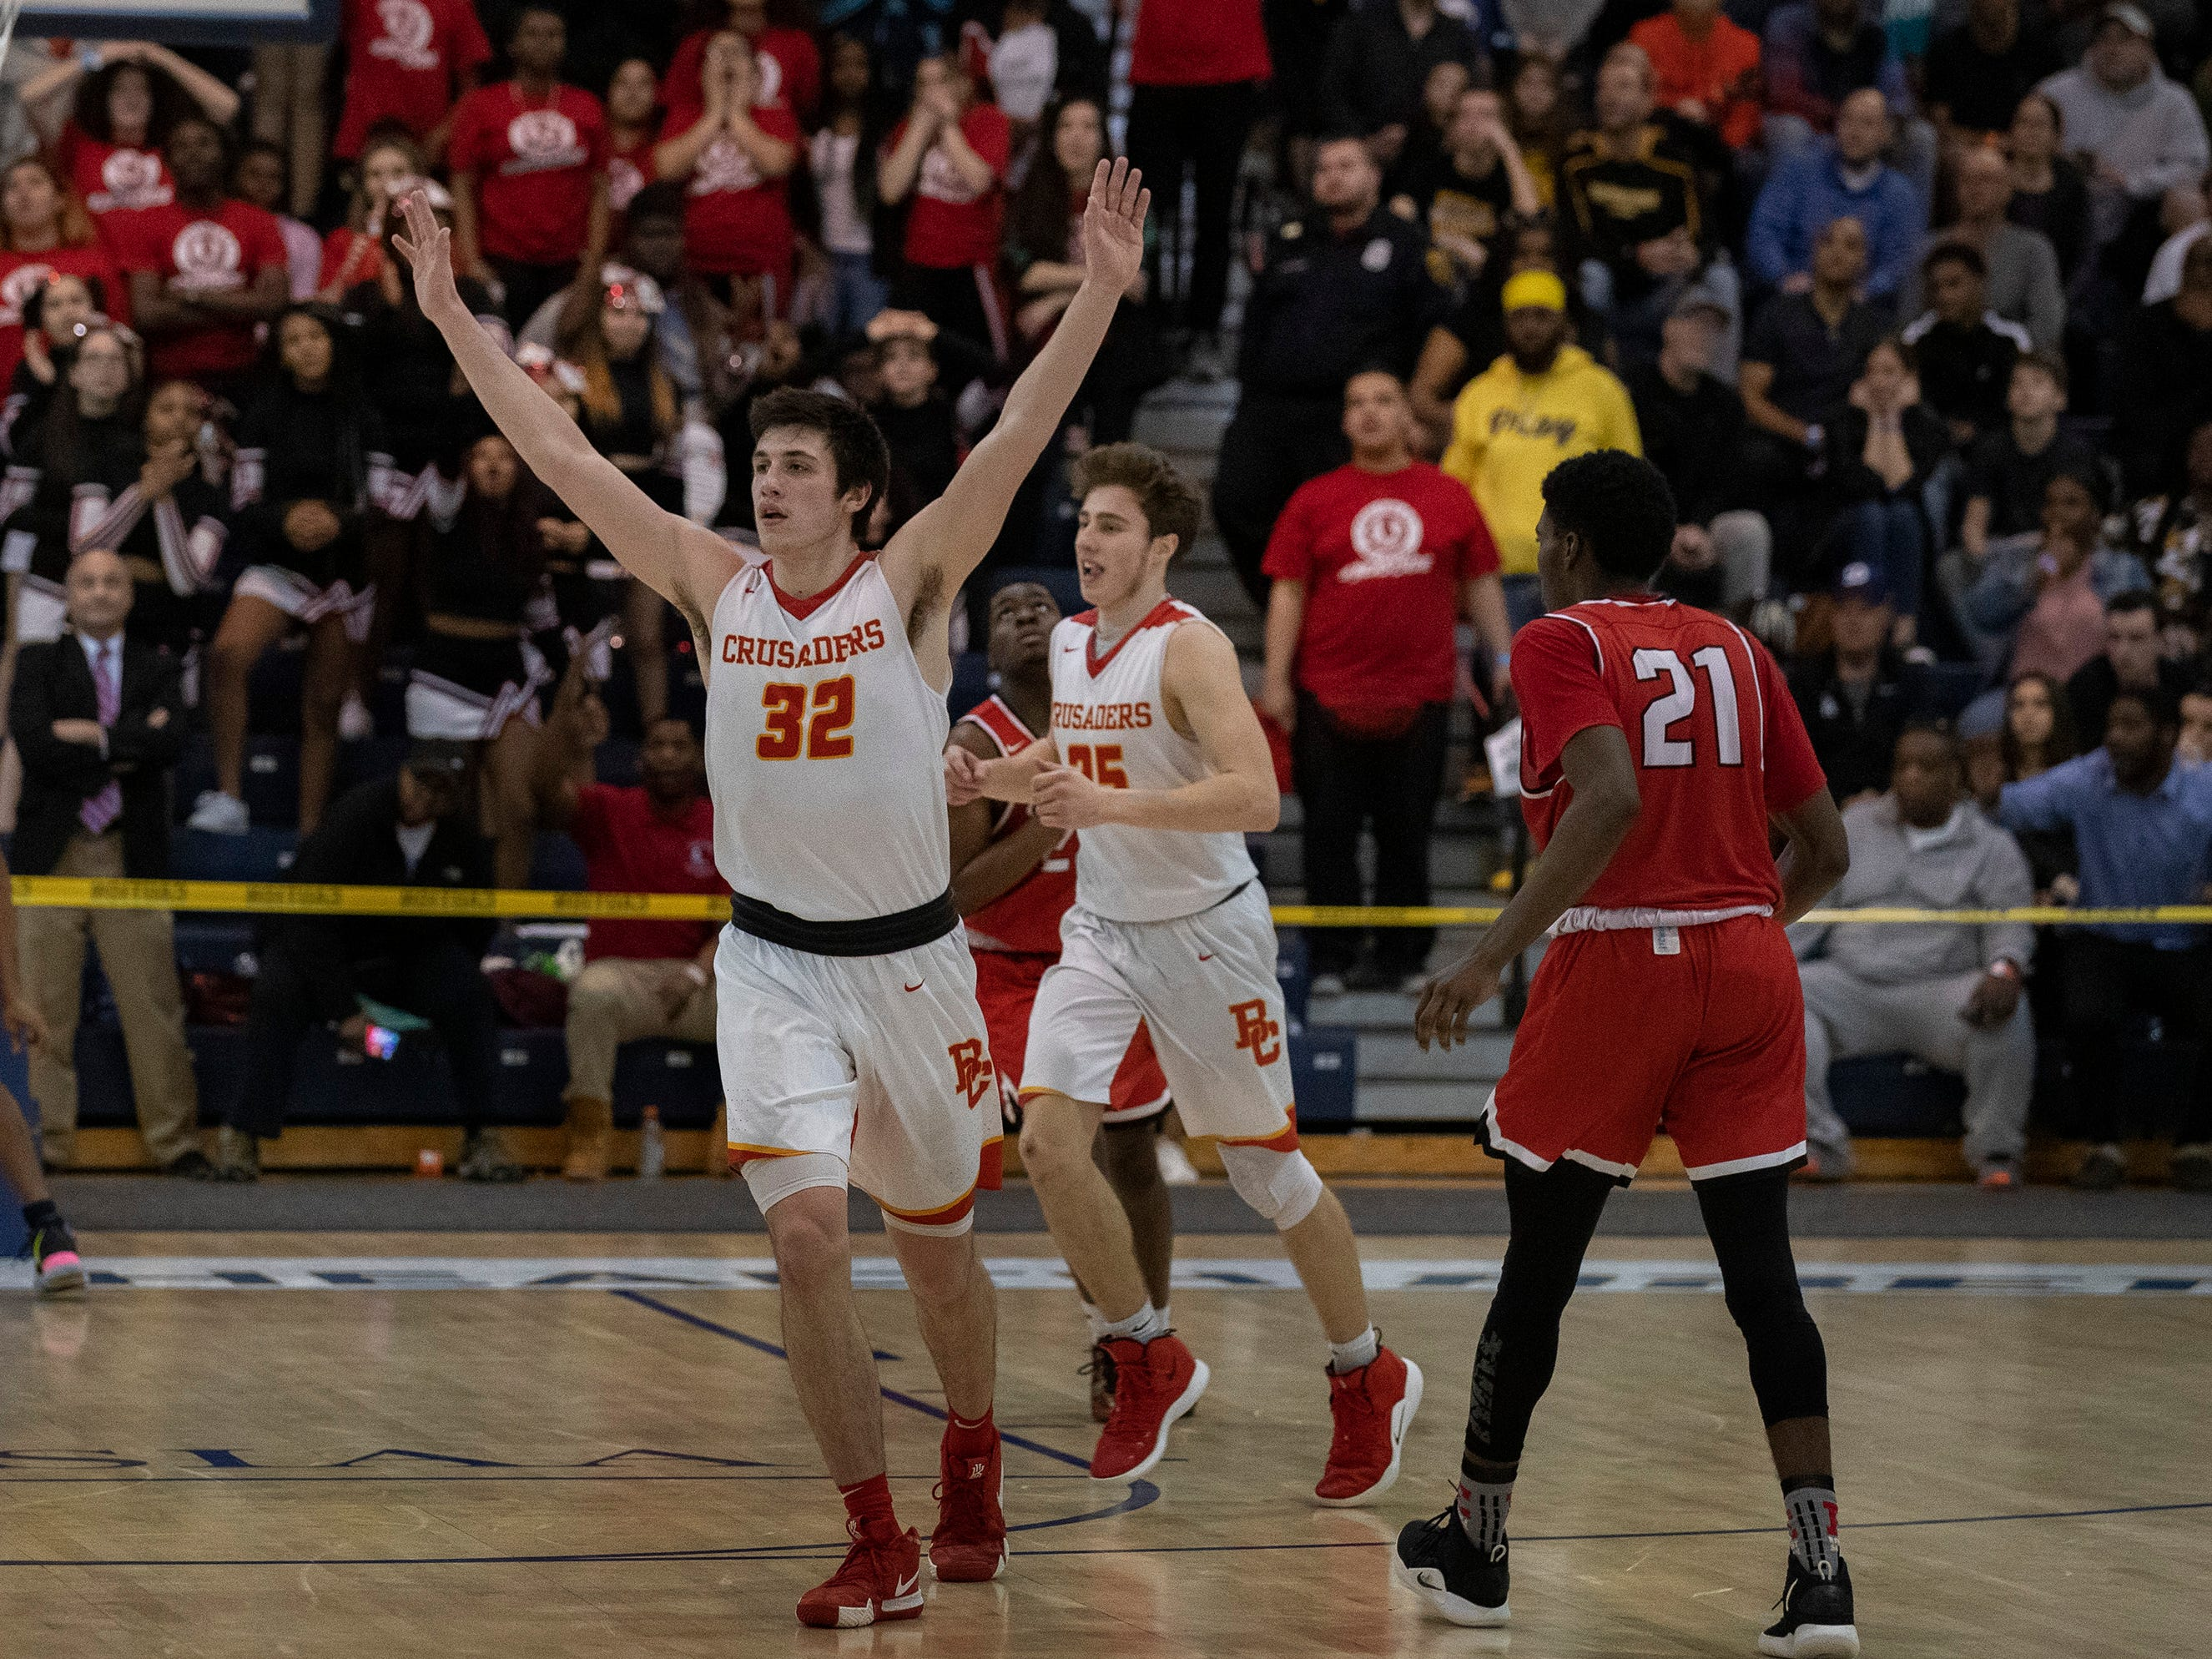 Bergen Catholic's Zachary Freemantle celebrates as the time runs out and they win their semifinal. Bergen Catholic vs. Newark East Side in the 5:30 p.m. semifinals of the 2019 NJSIAA Tournament of Champions in Toms River on March 15, 2019.